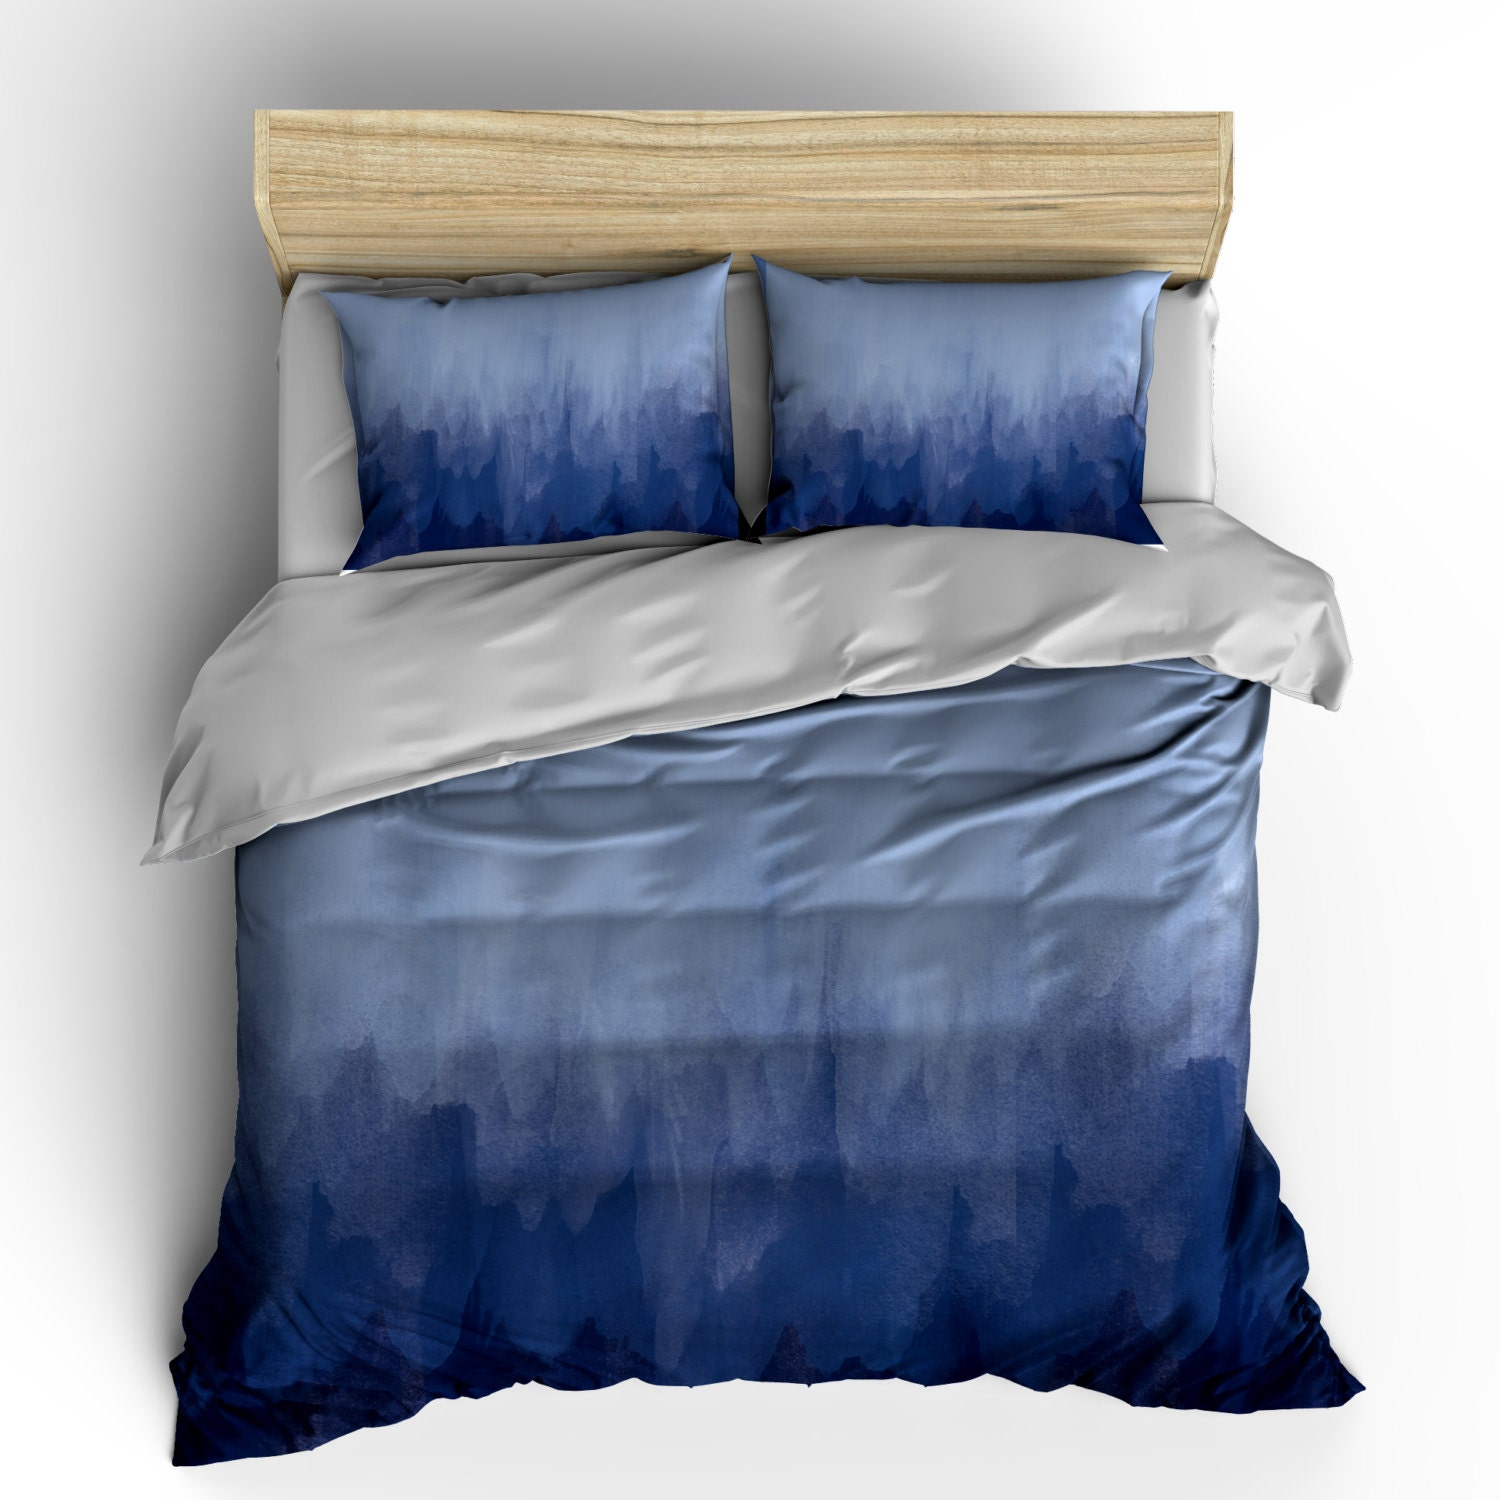 Grey Or Navy Blue Watercolor Bedding Duvet Cover Or Comforter